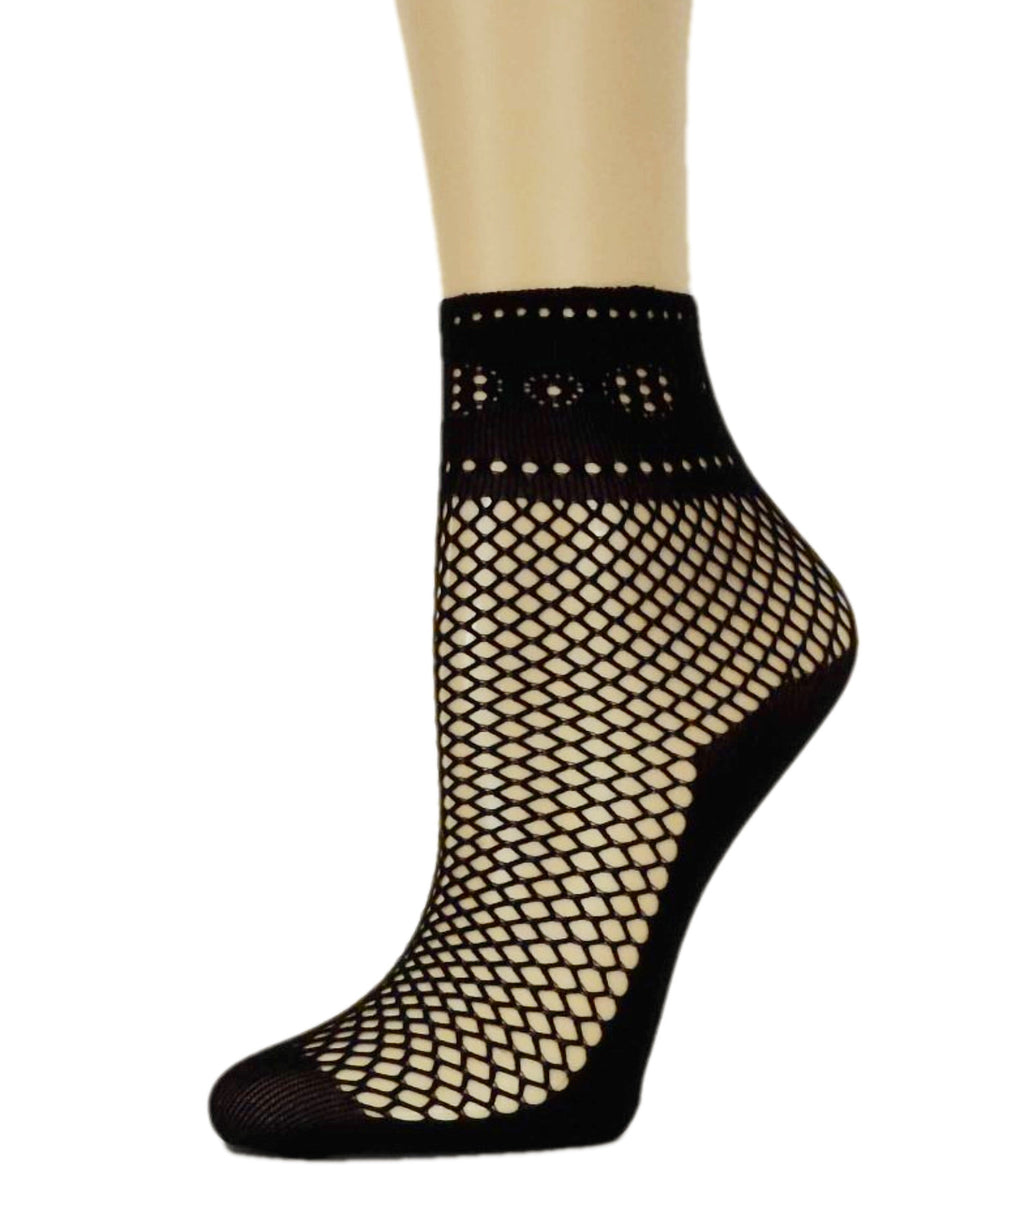 Rich Black Fishnet Socks - Global Trendz Fashion®